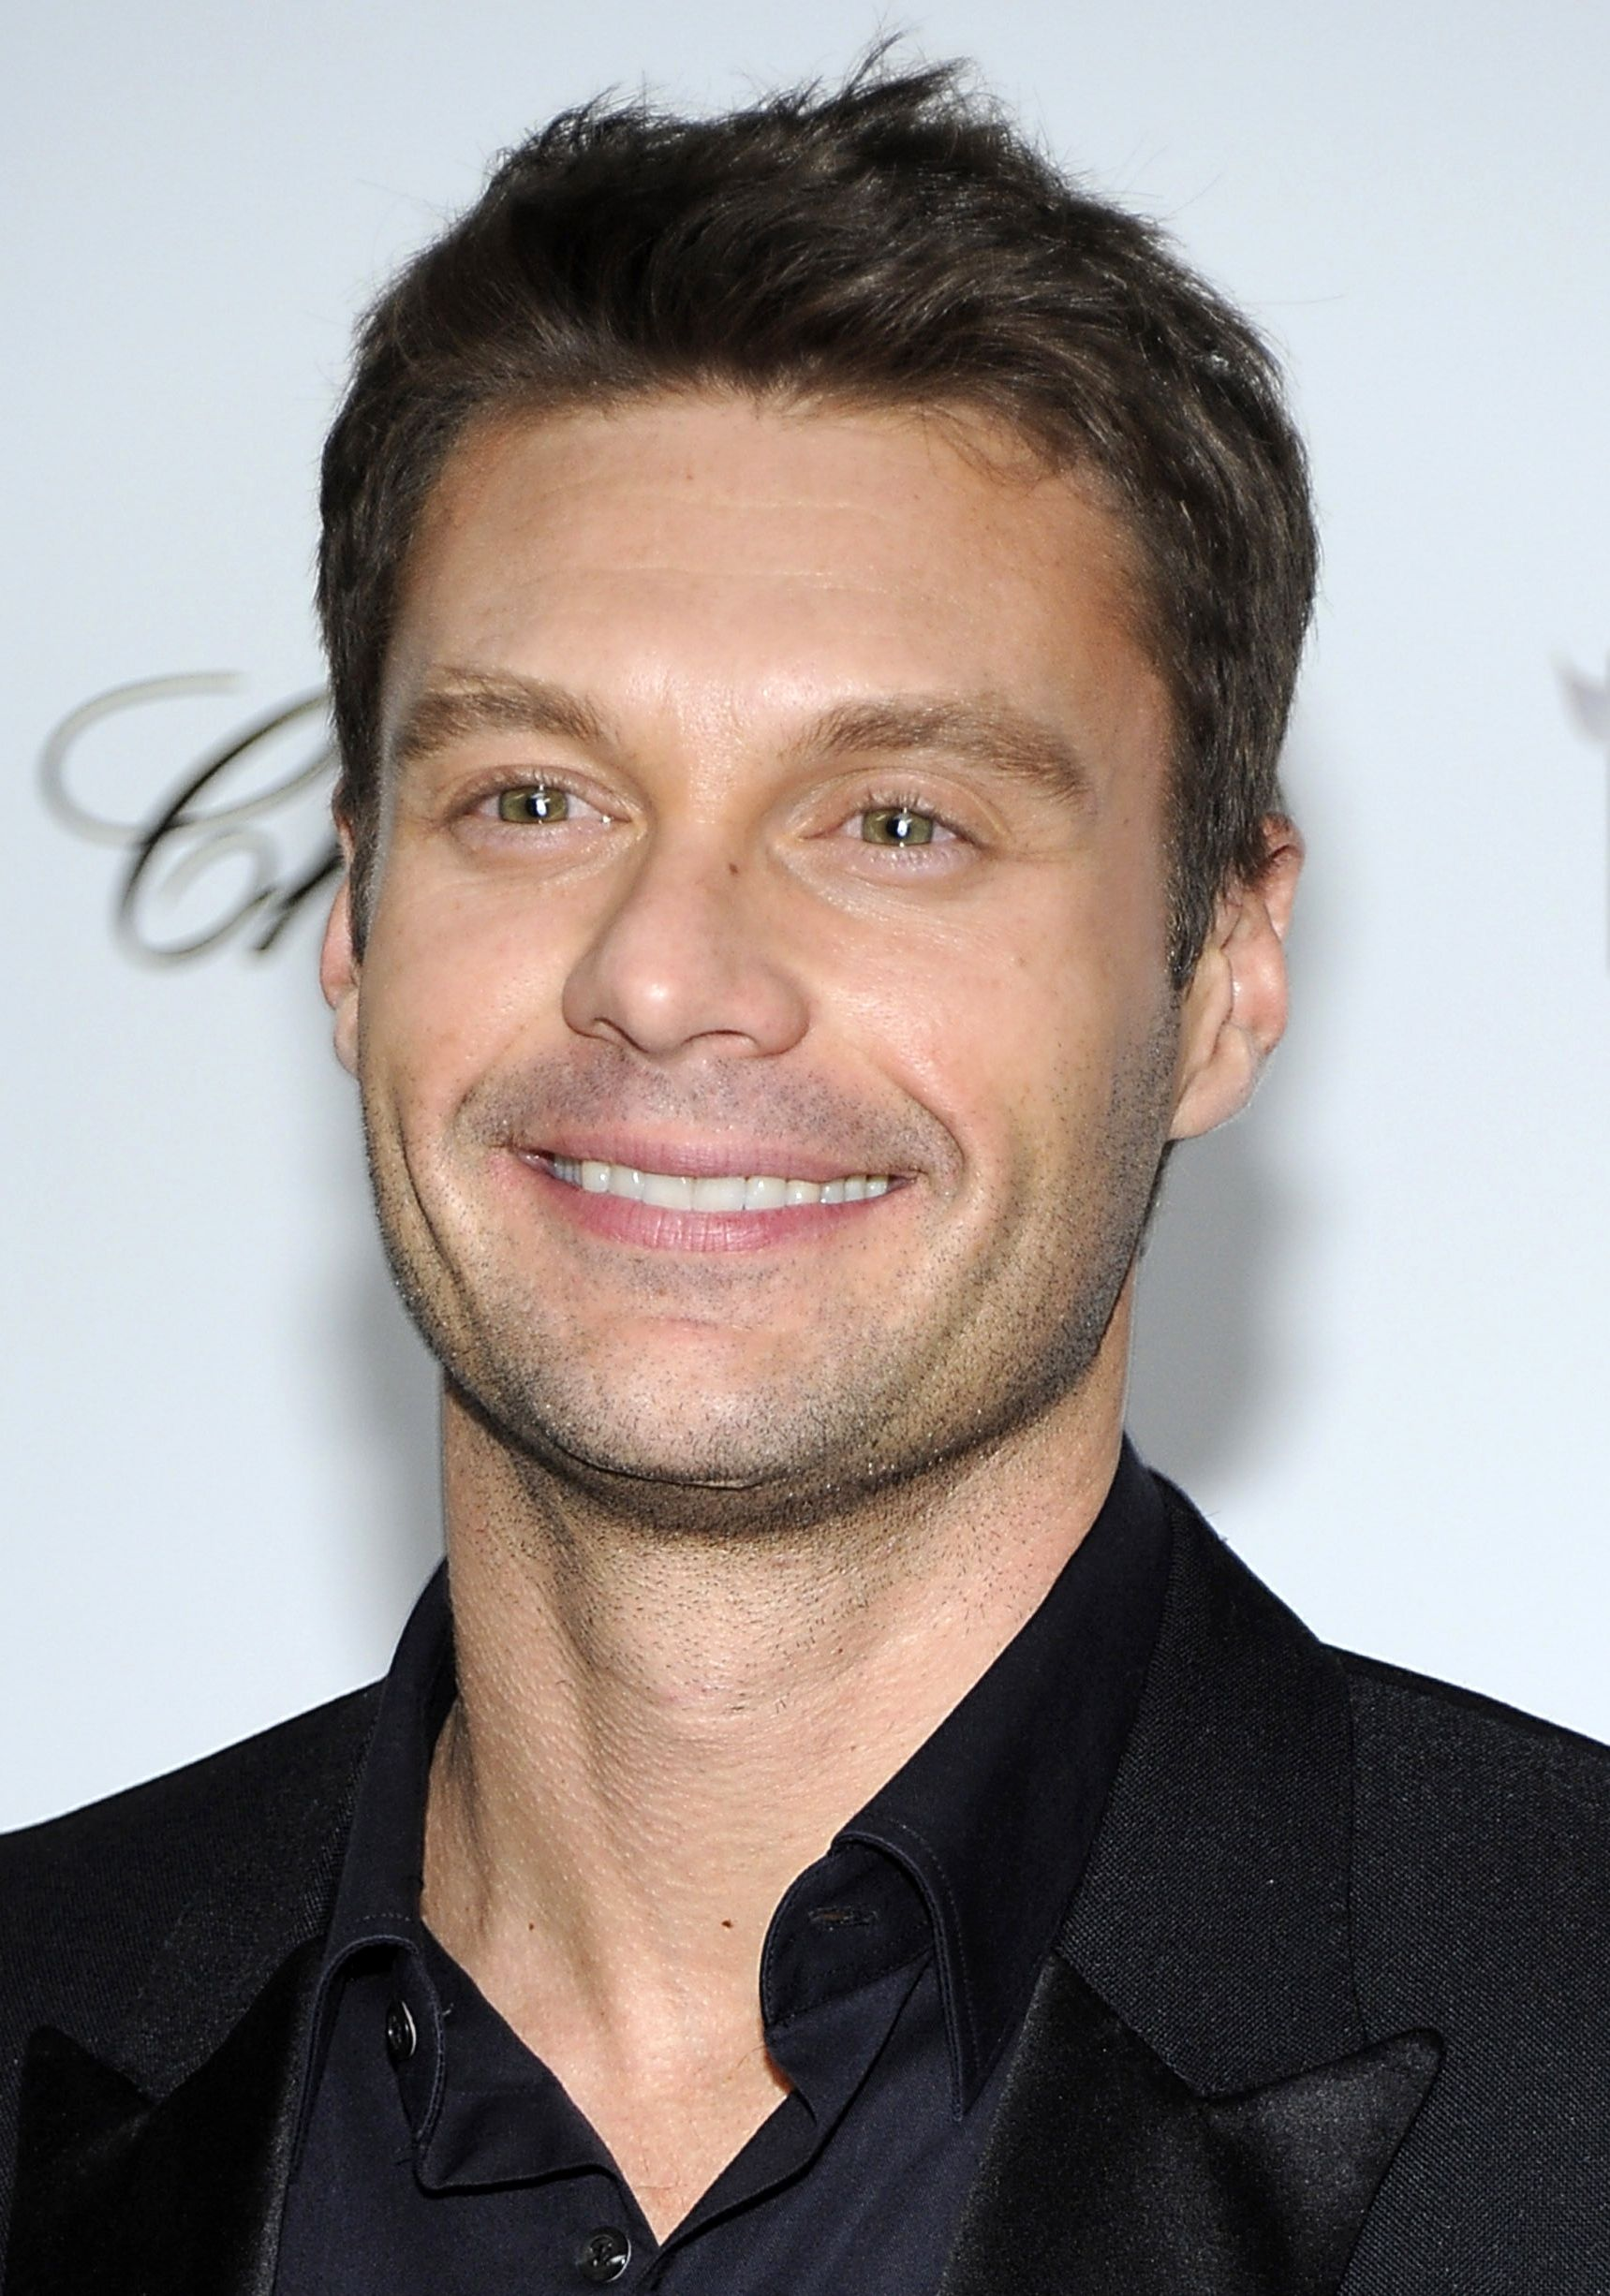 Ryan Seacrest photo #478821